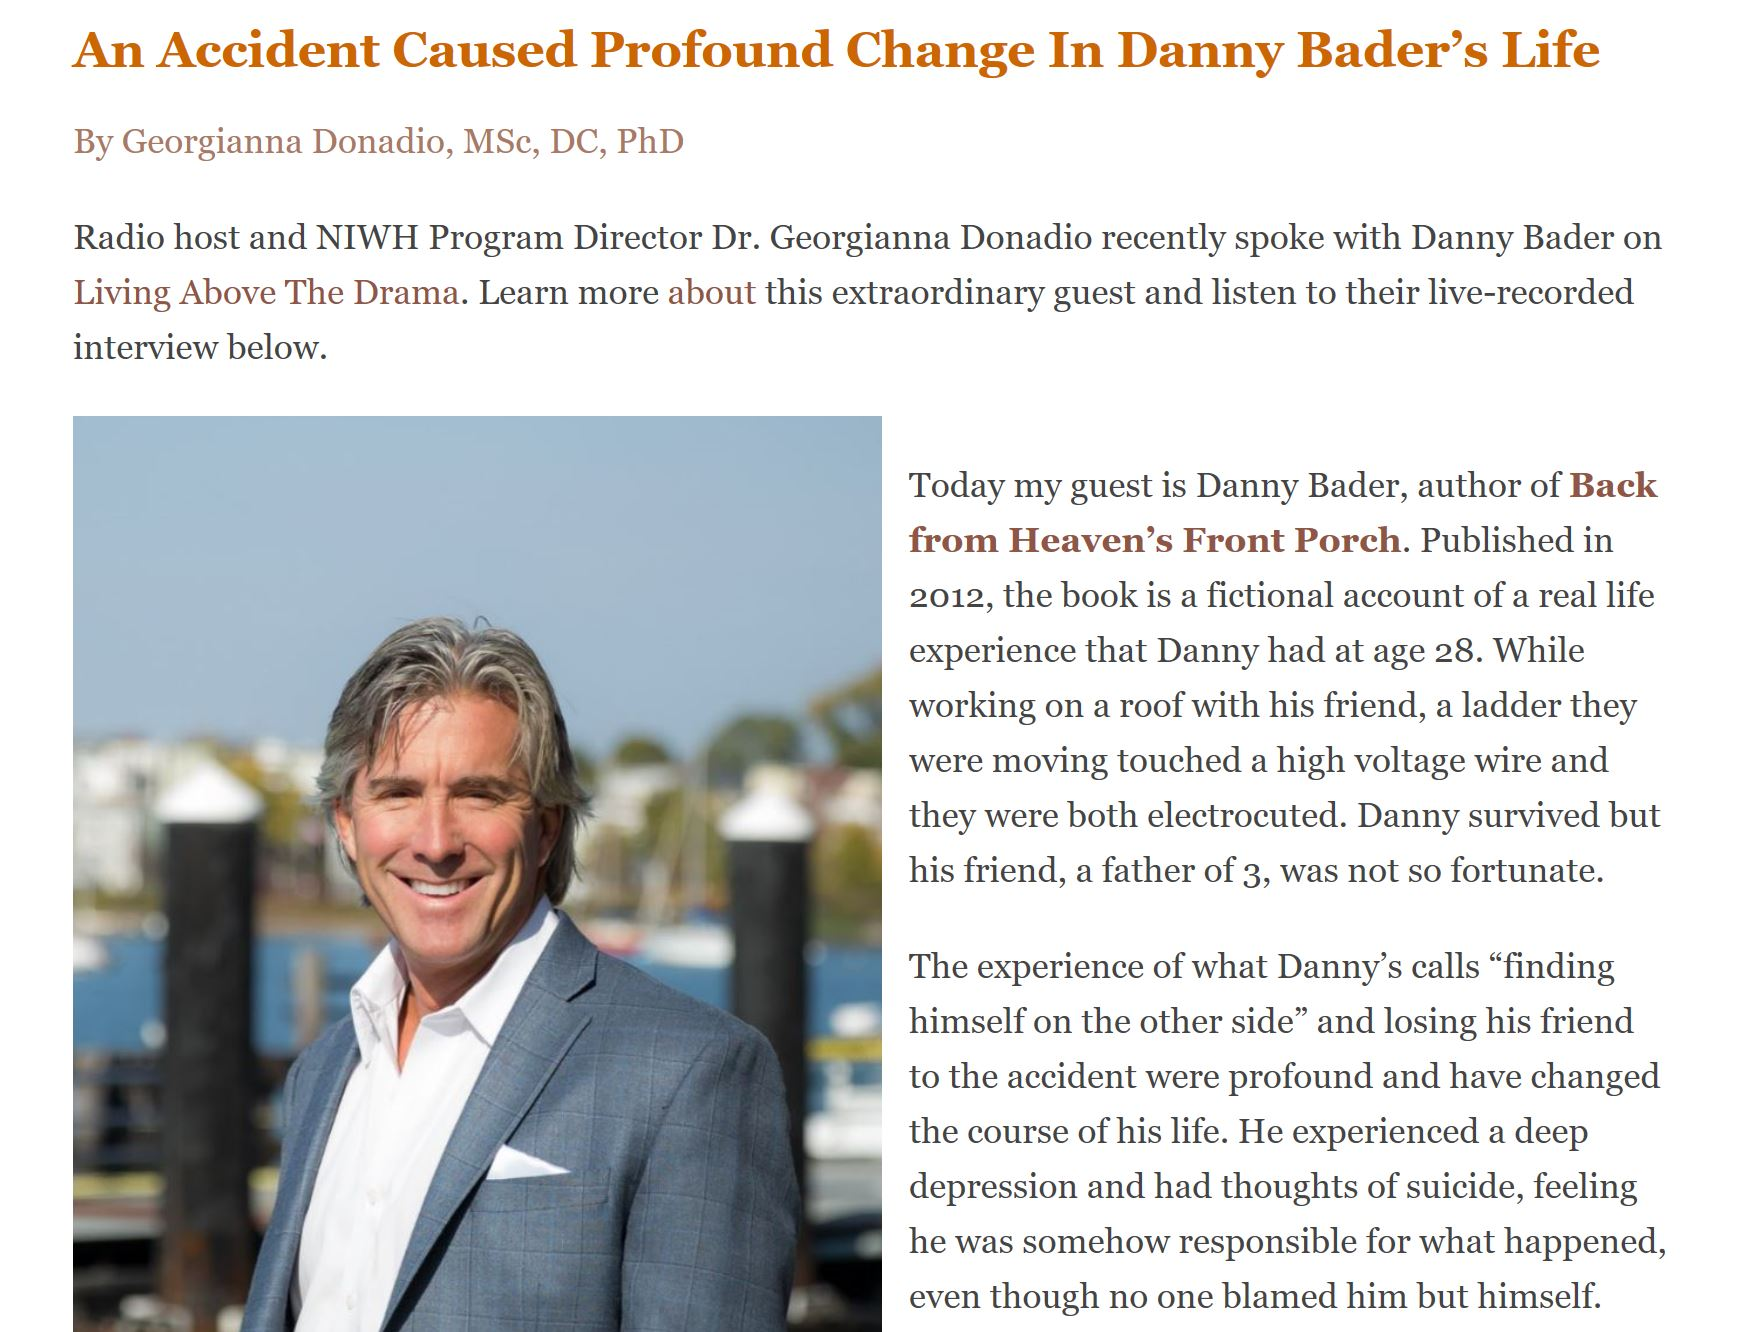 An Accident Caused Profound Change in Danny Bader's Life